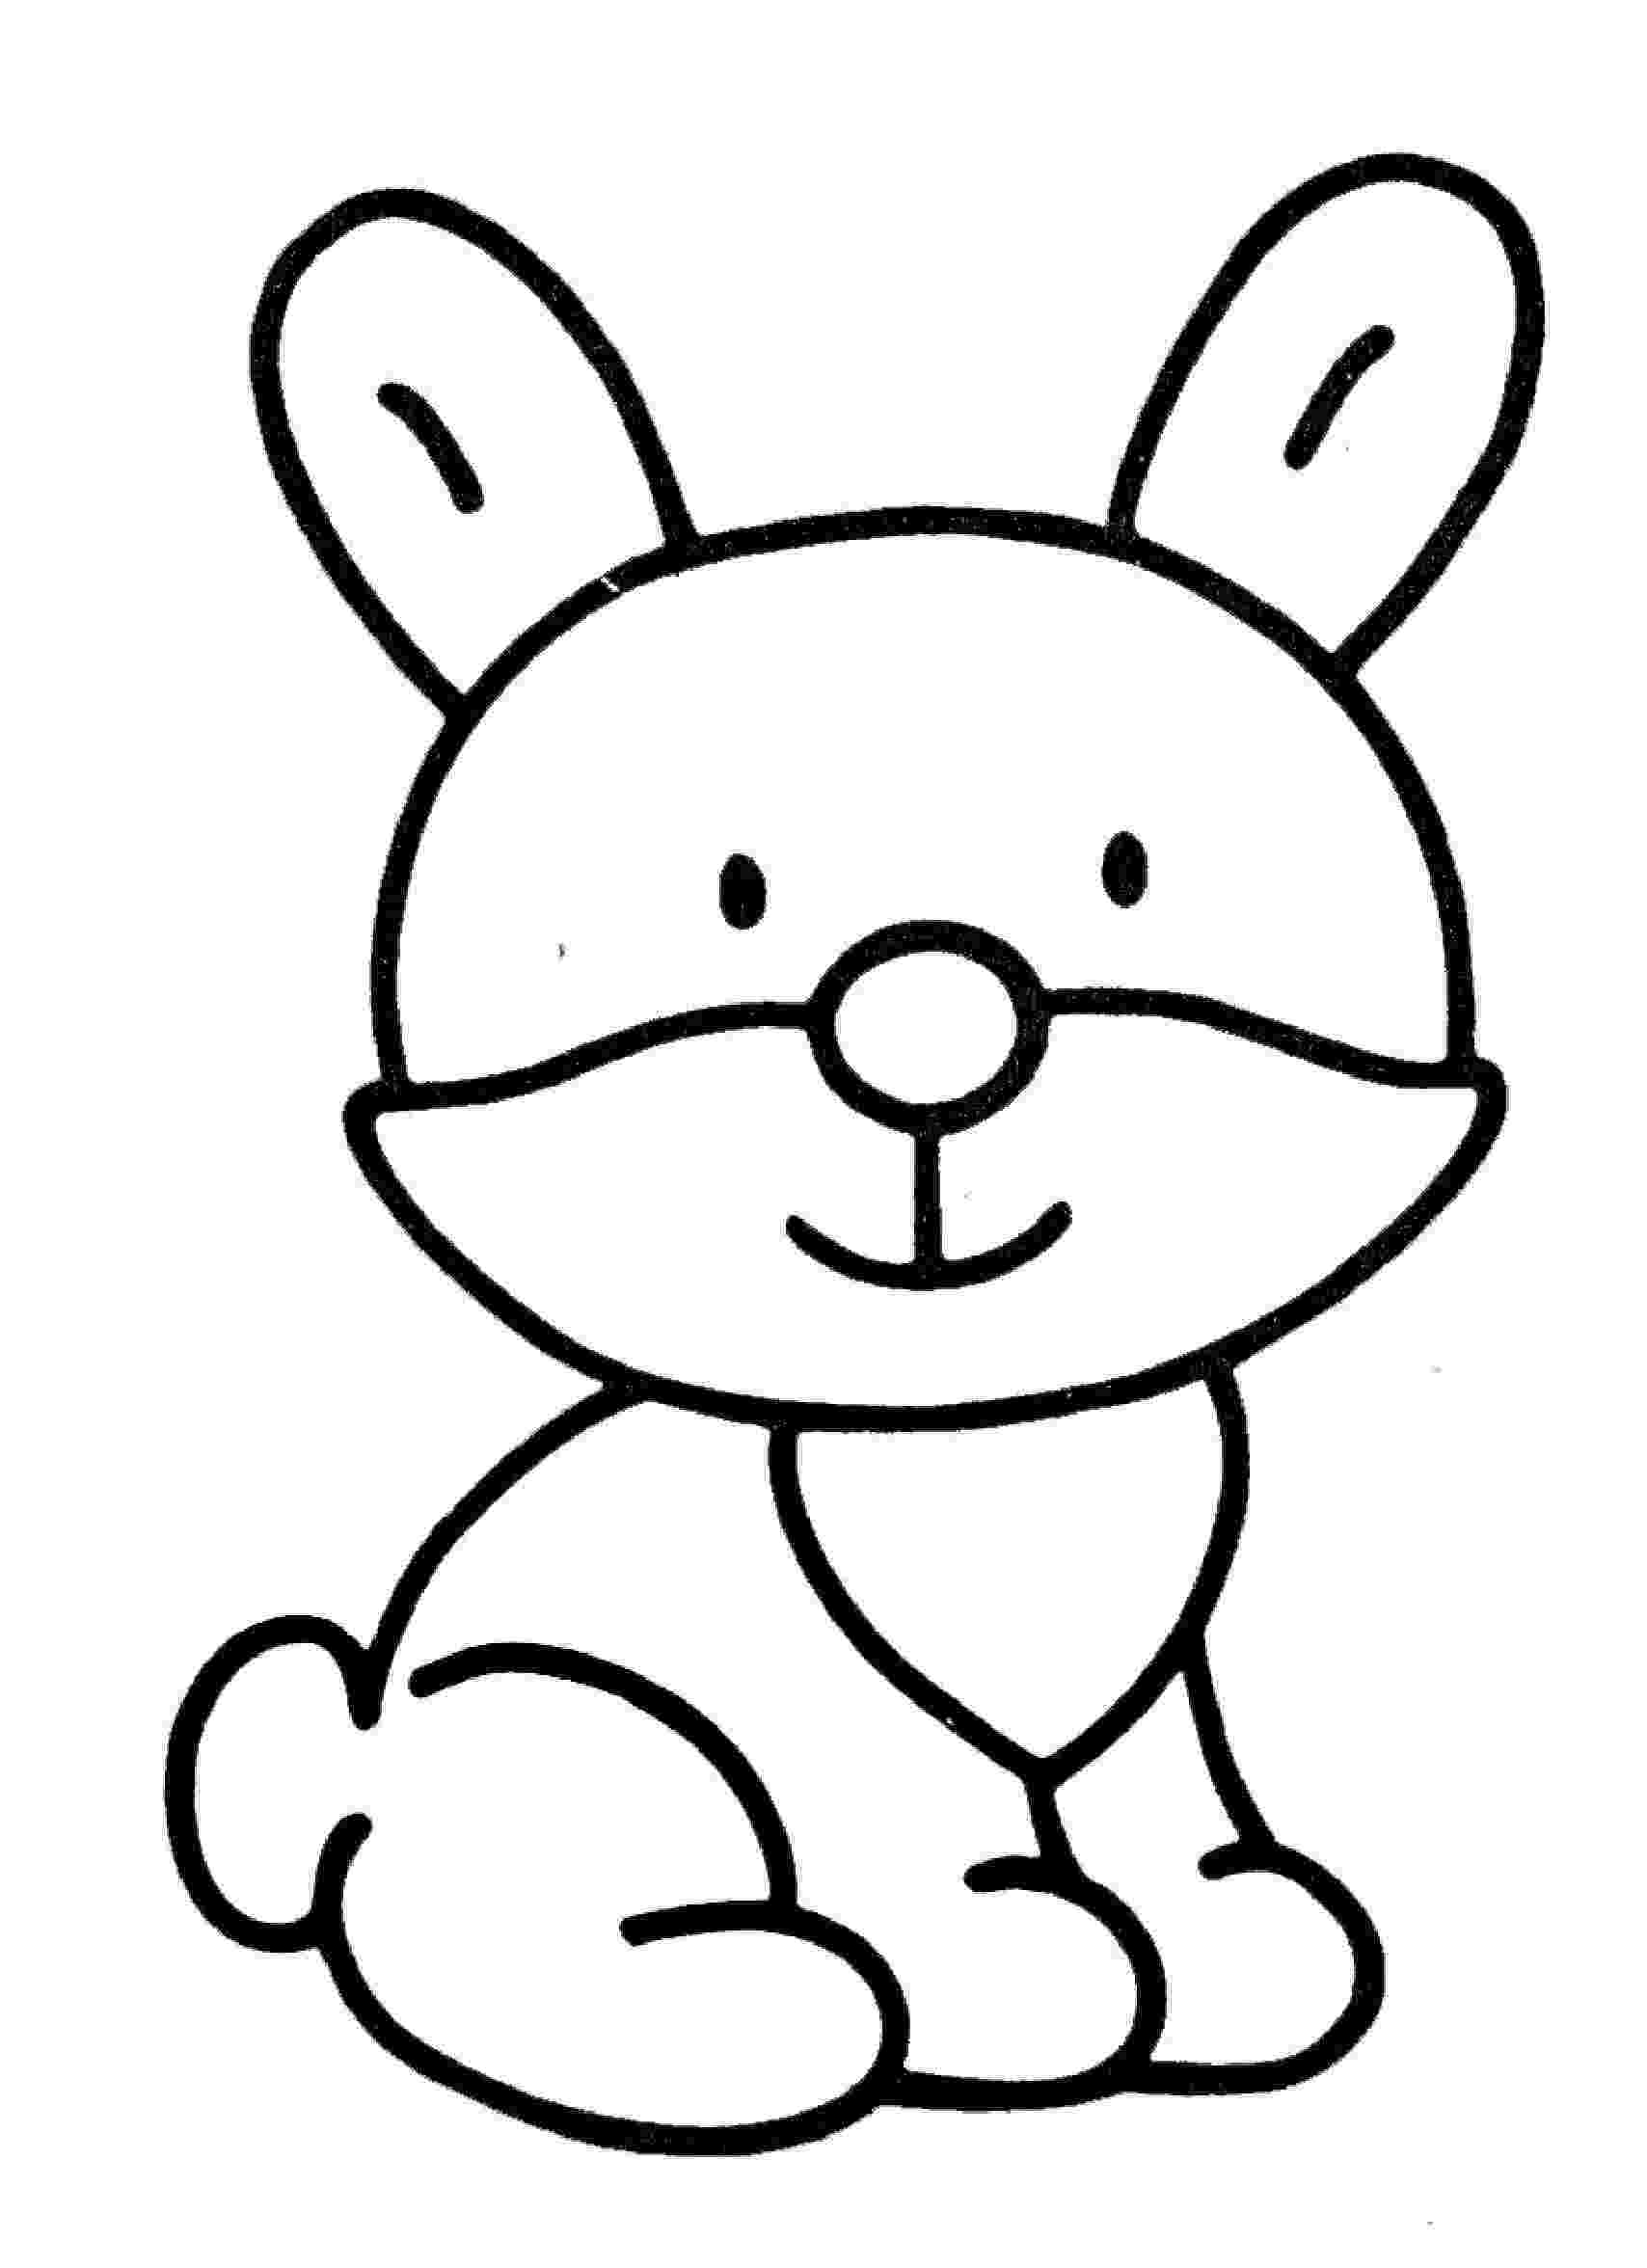 coloring book pages to print free free printable tangled coloring pages for kids cool2bkids pages coloring print free book to